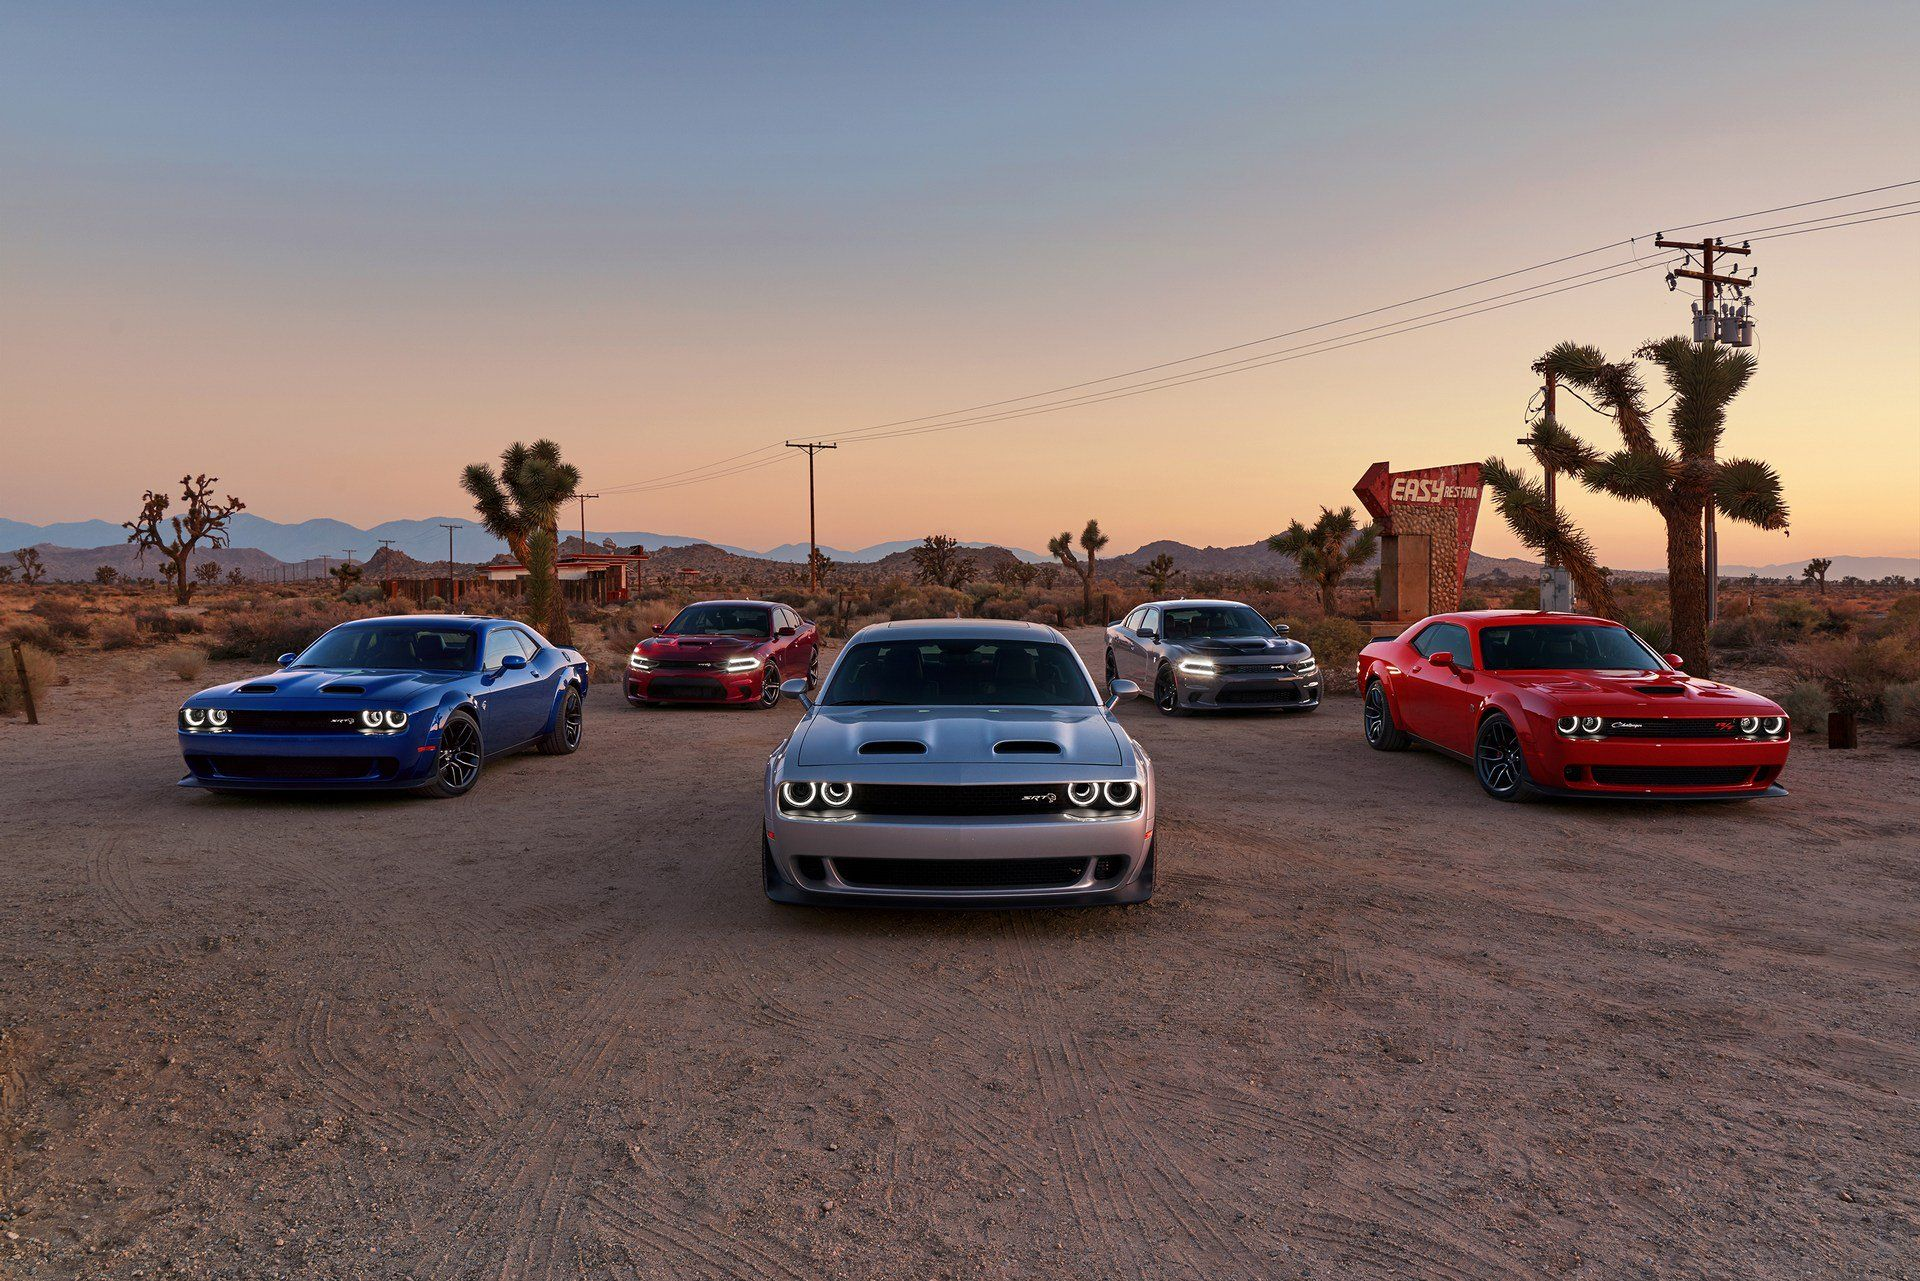 2019 Dodge Challenger Srt Hellcat Redeye Debuts With 797 Hp W Video